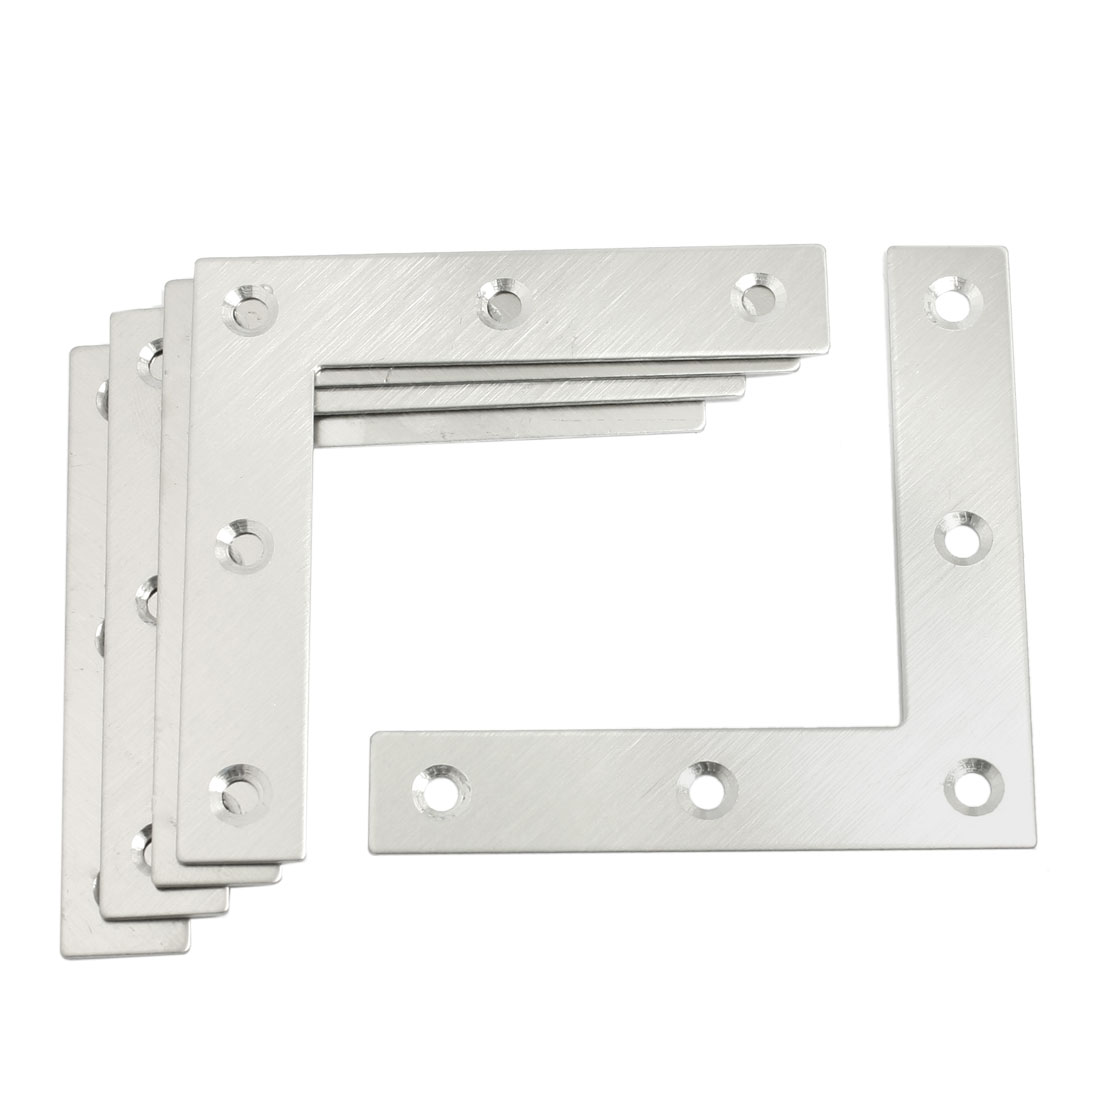 5 Pcs Angle Plate Corner Brace Flat L Shape Repair Bracket 80mm x 80mm